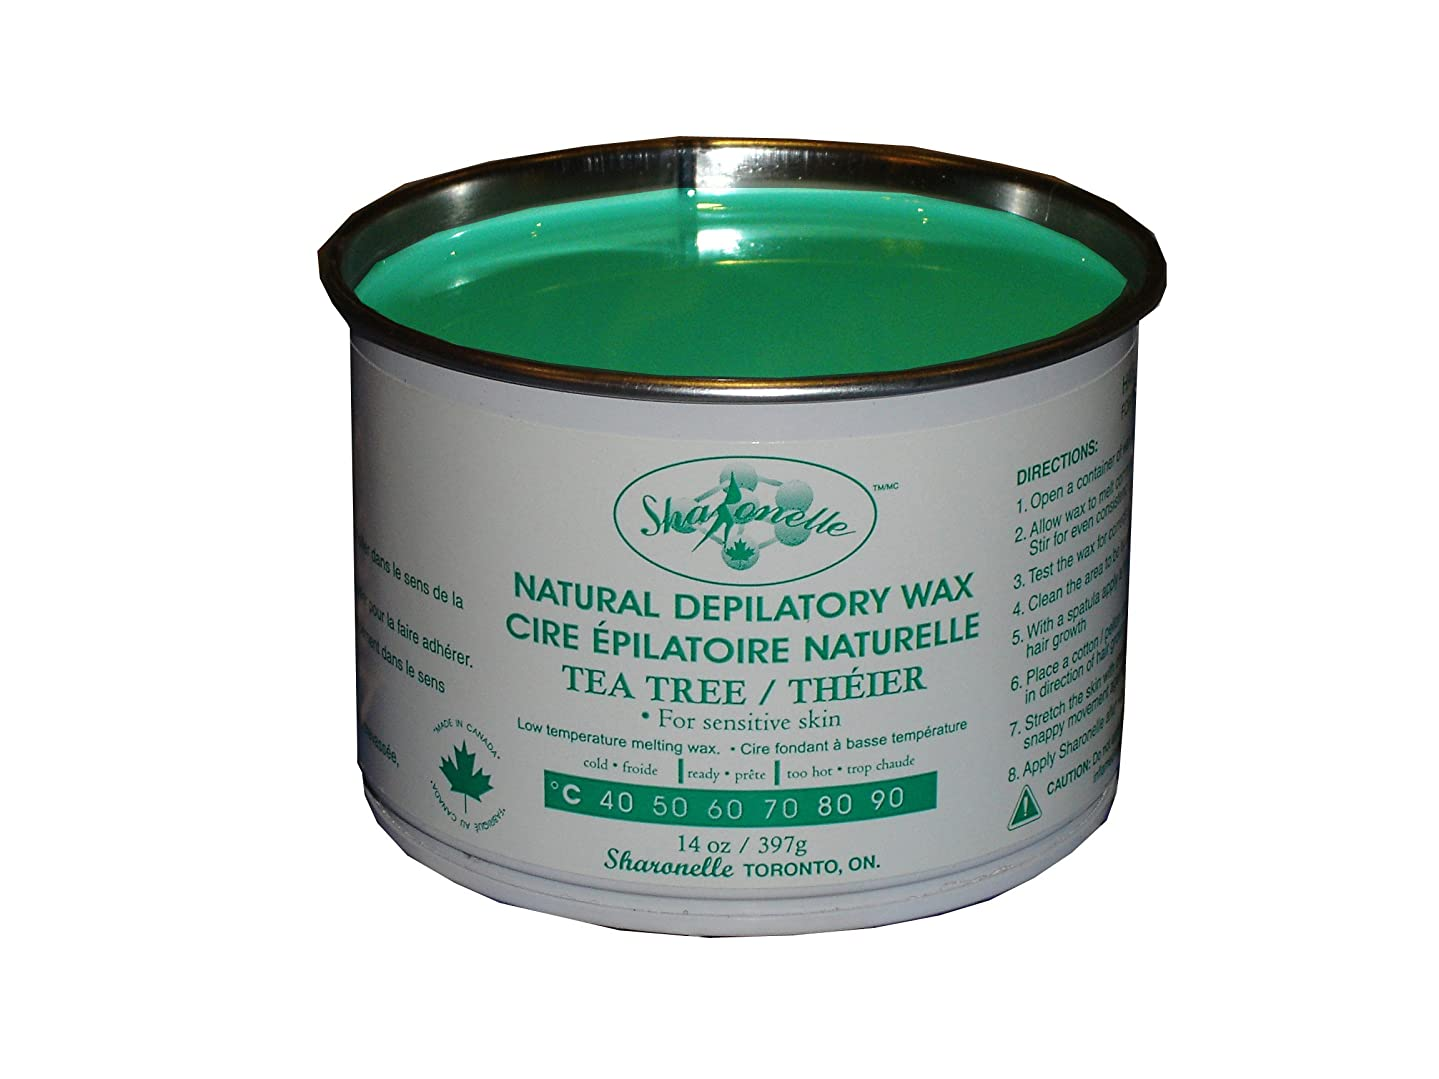 Sharonelle Natural Tea Tree Soft Wax For Sensitive Skin in 14 oz. (1)